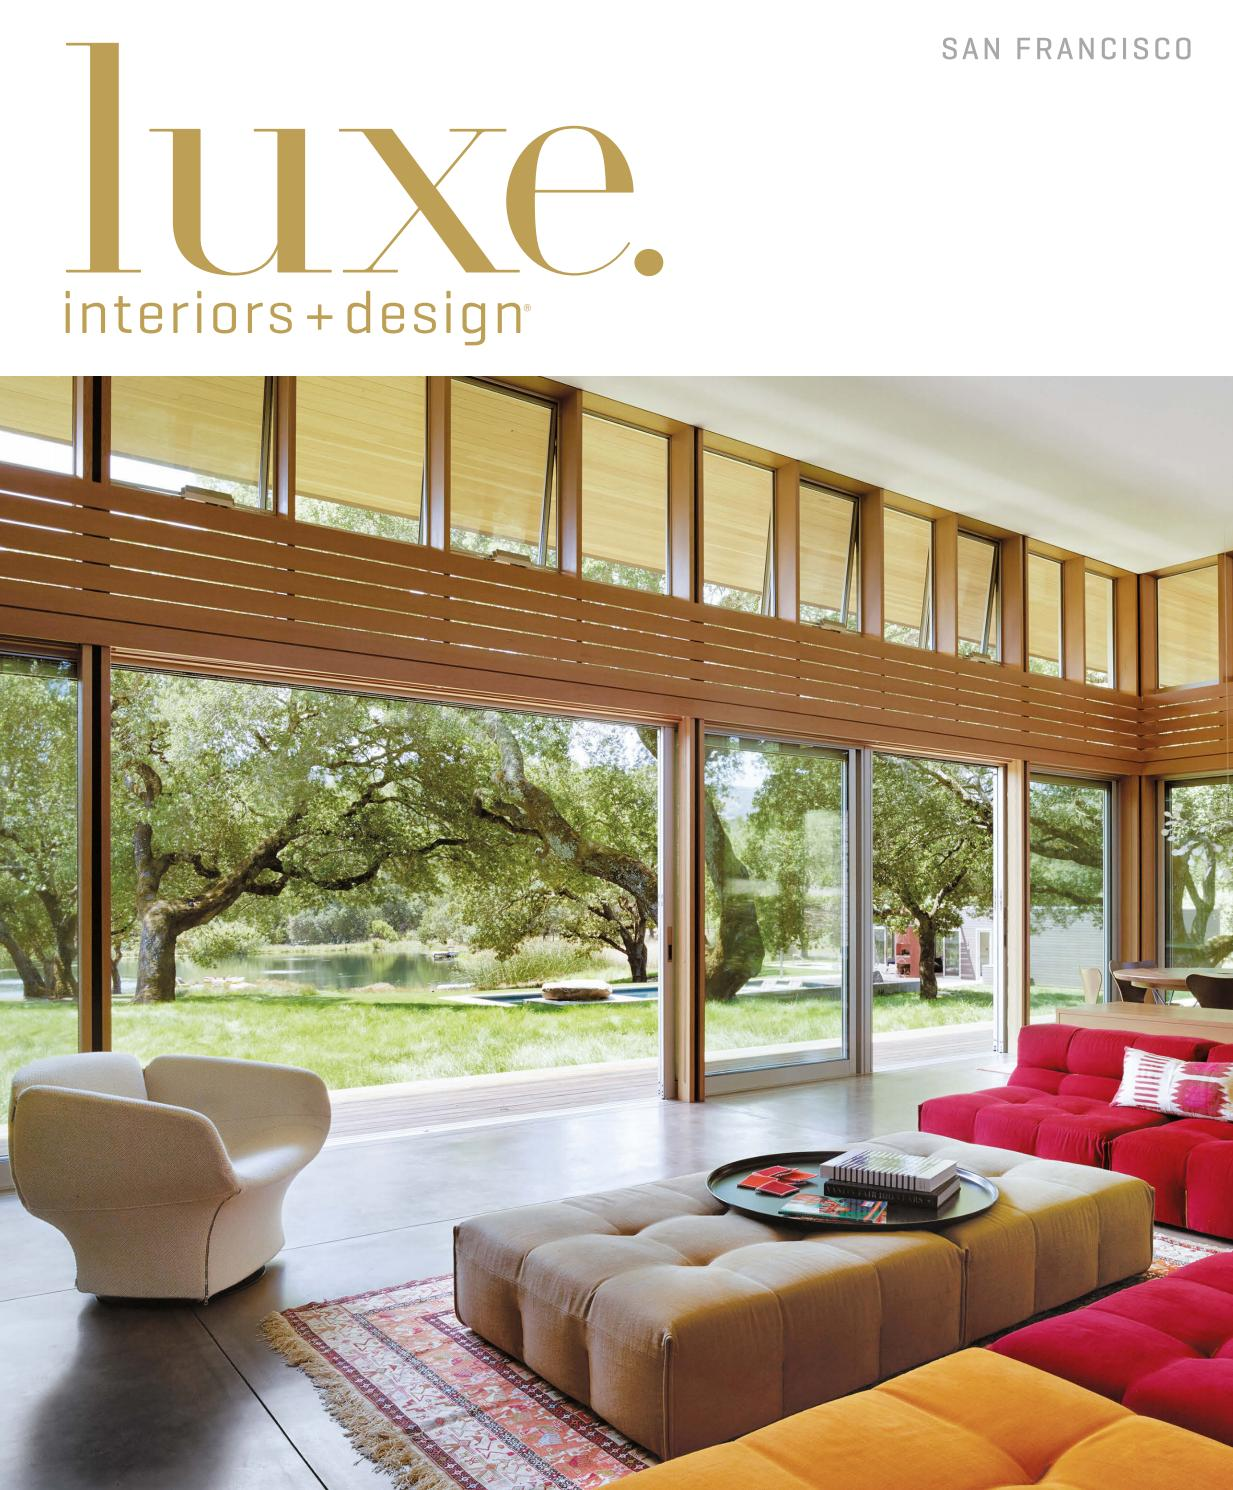 Luxe magazine july 2016 san francisco by sandow issuu for Design companies in san francisco